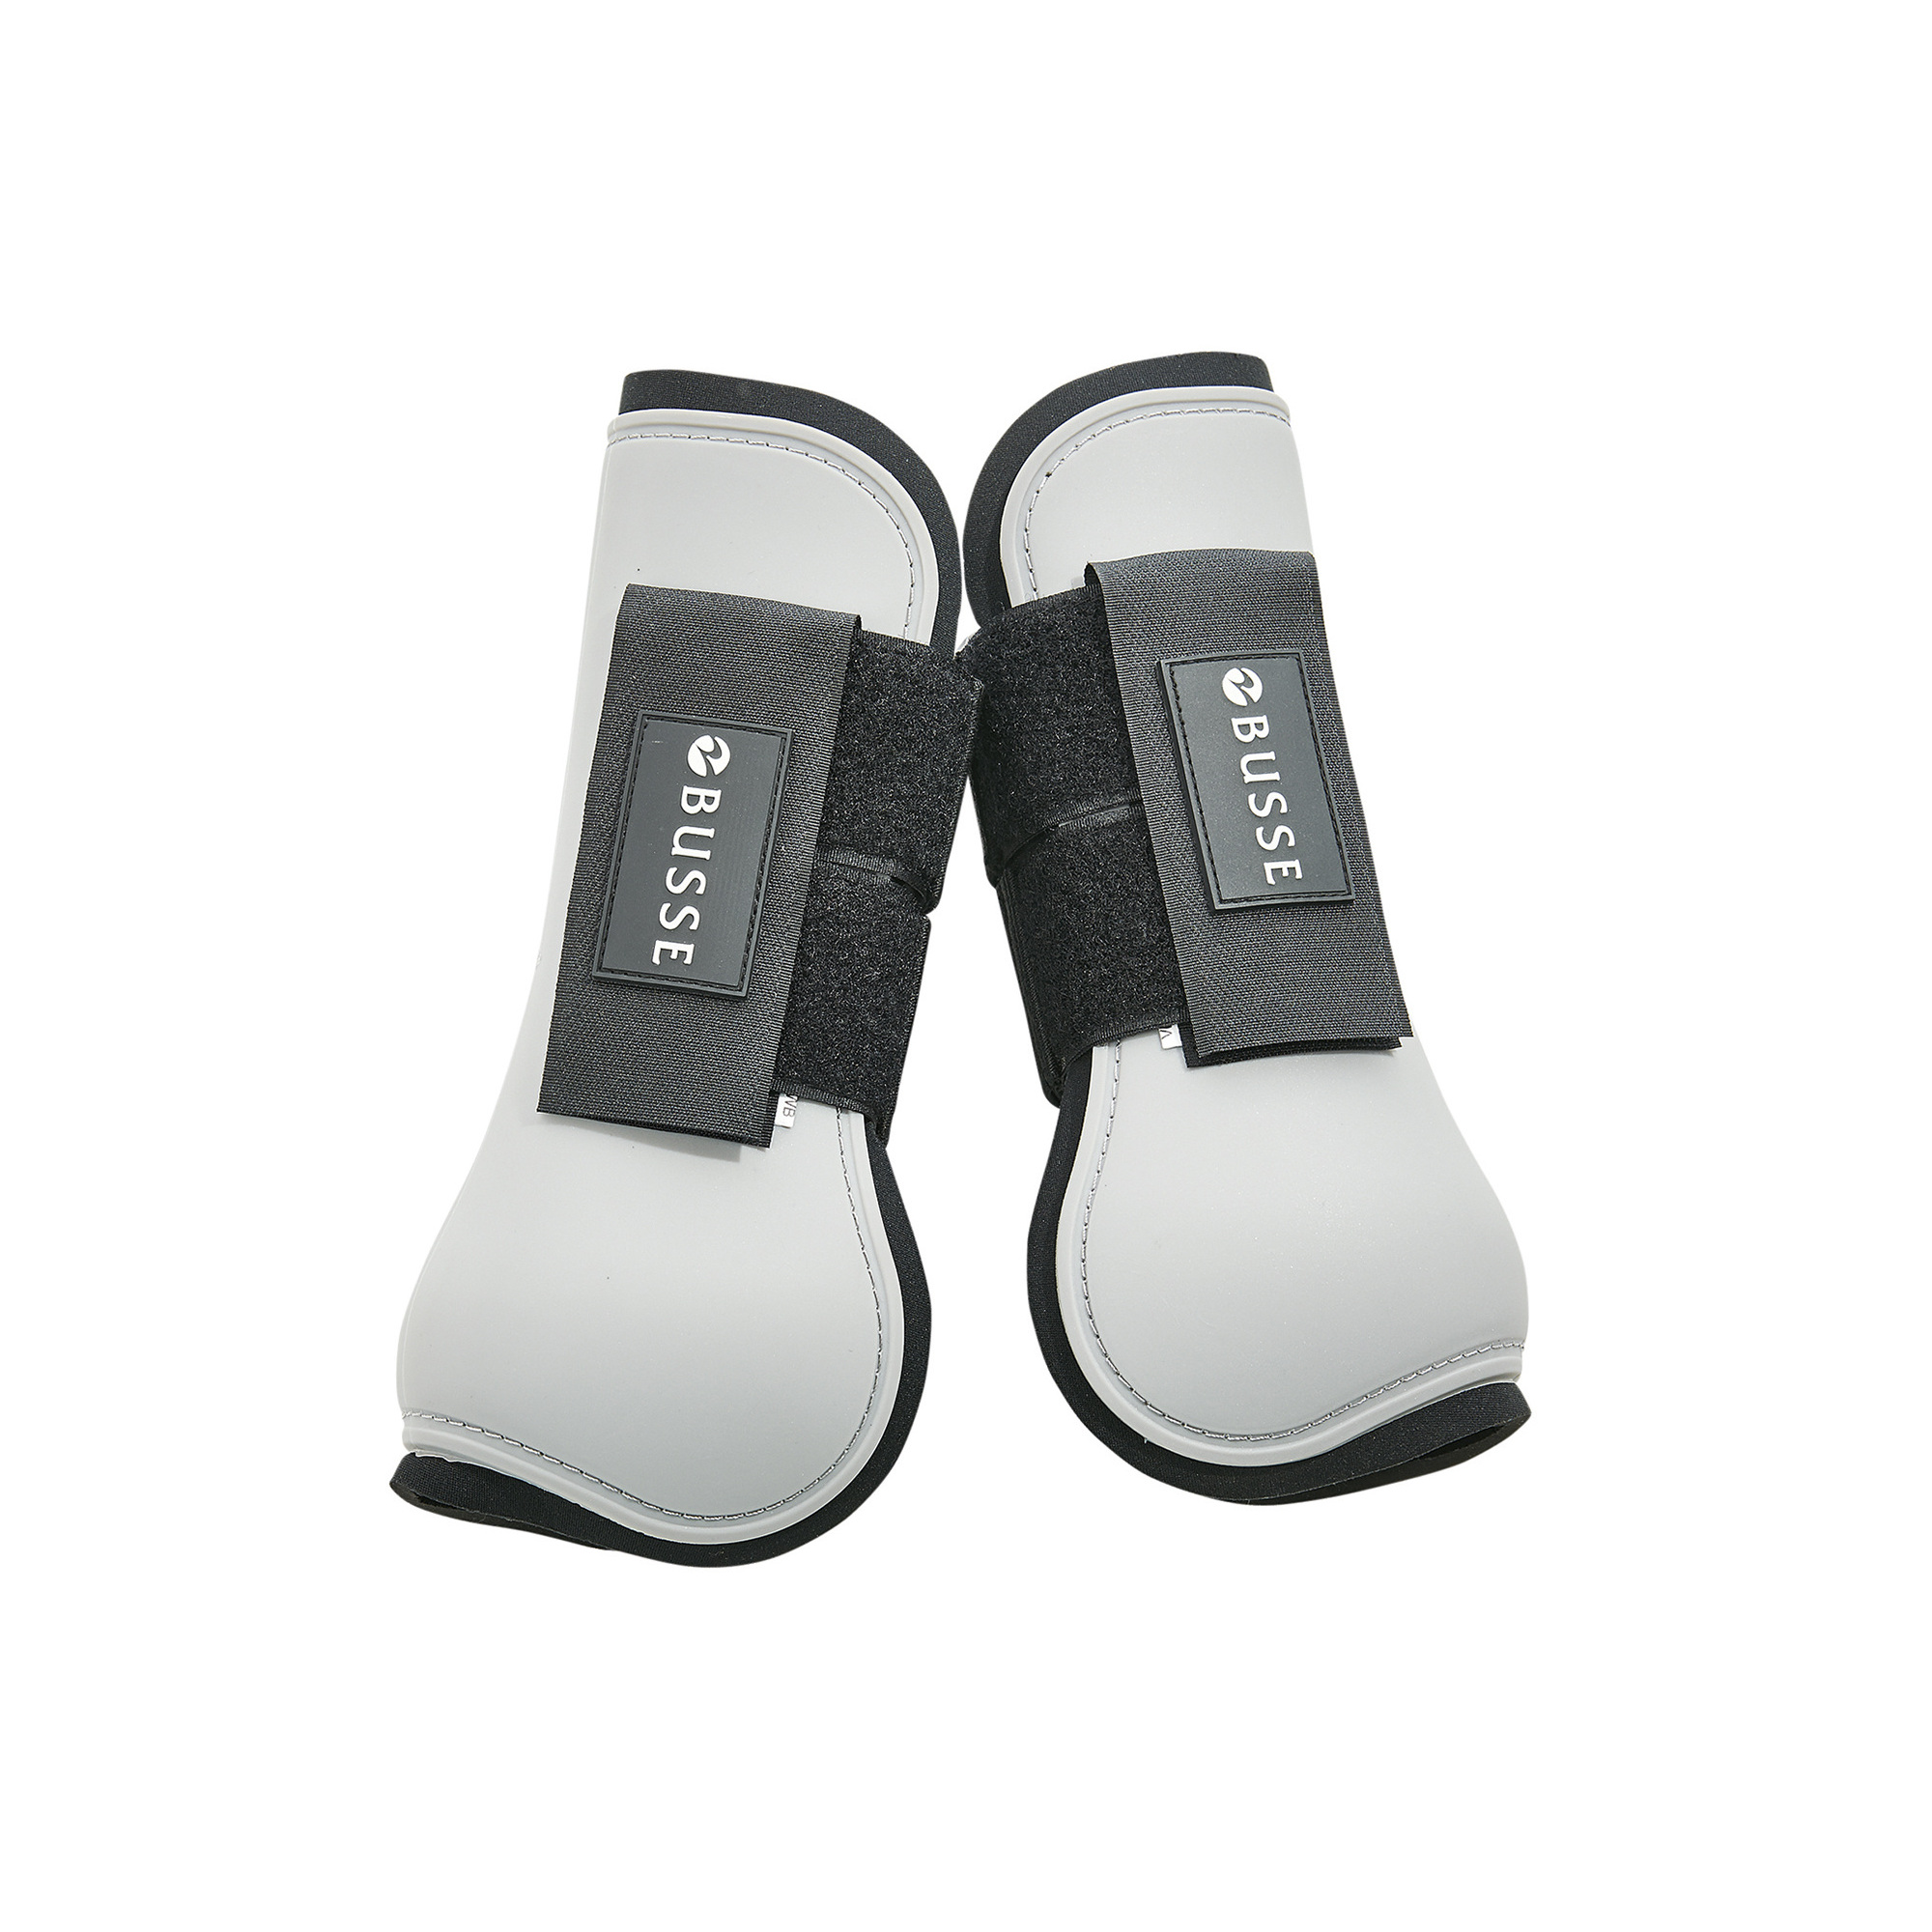 Busse Tendon Boots Allround Equishop Equestrian Shop